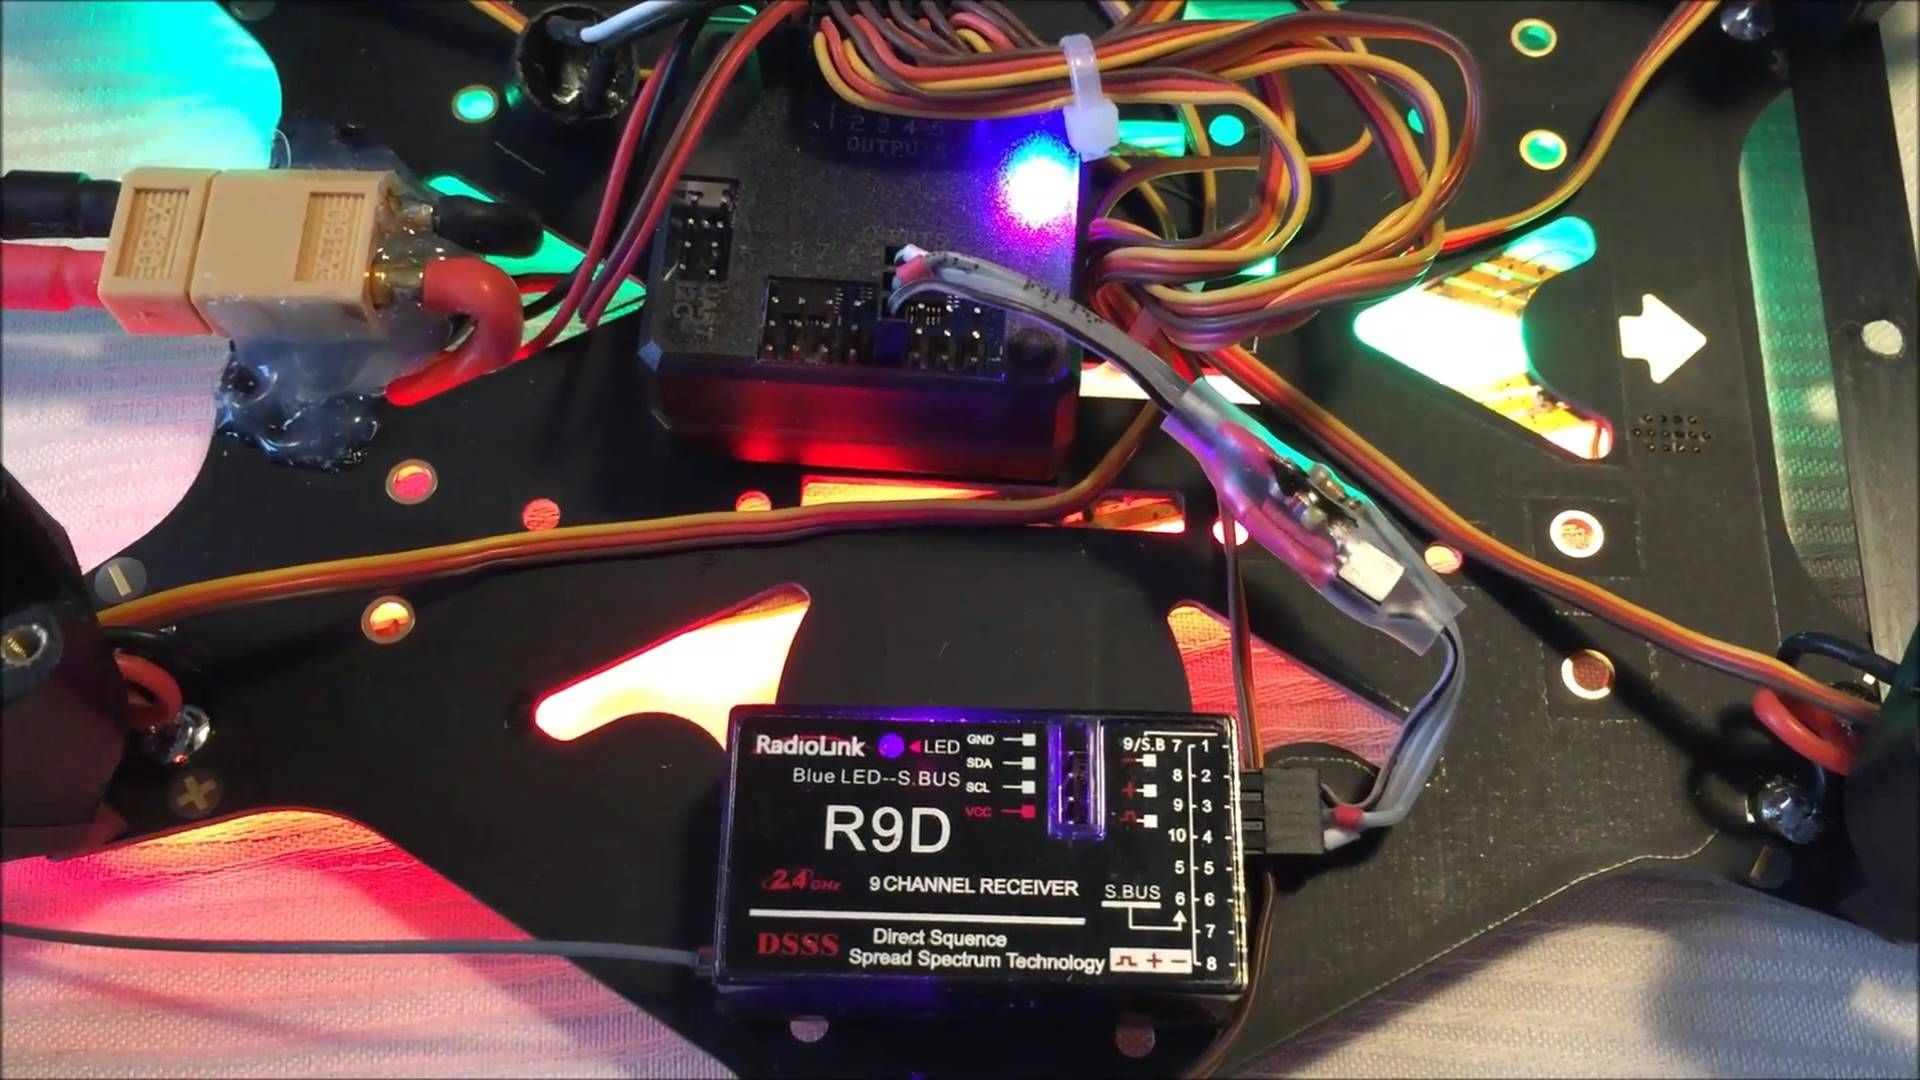 a319c3217aca1ea1fb25220dcf6b4e10 setup radiolink at9, r9d sbus and cleanflight how to setup at9 and